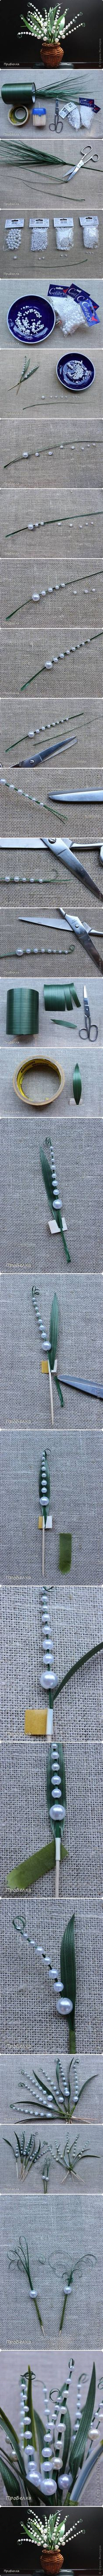 DIY Lily of the Valley DIY Projects | UsefulDIY.com